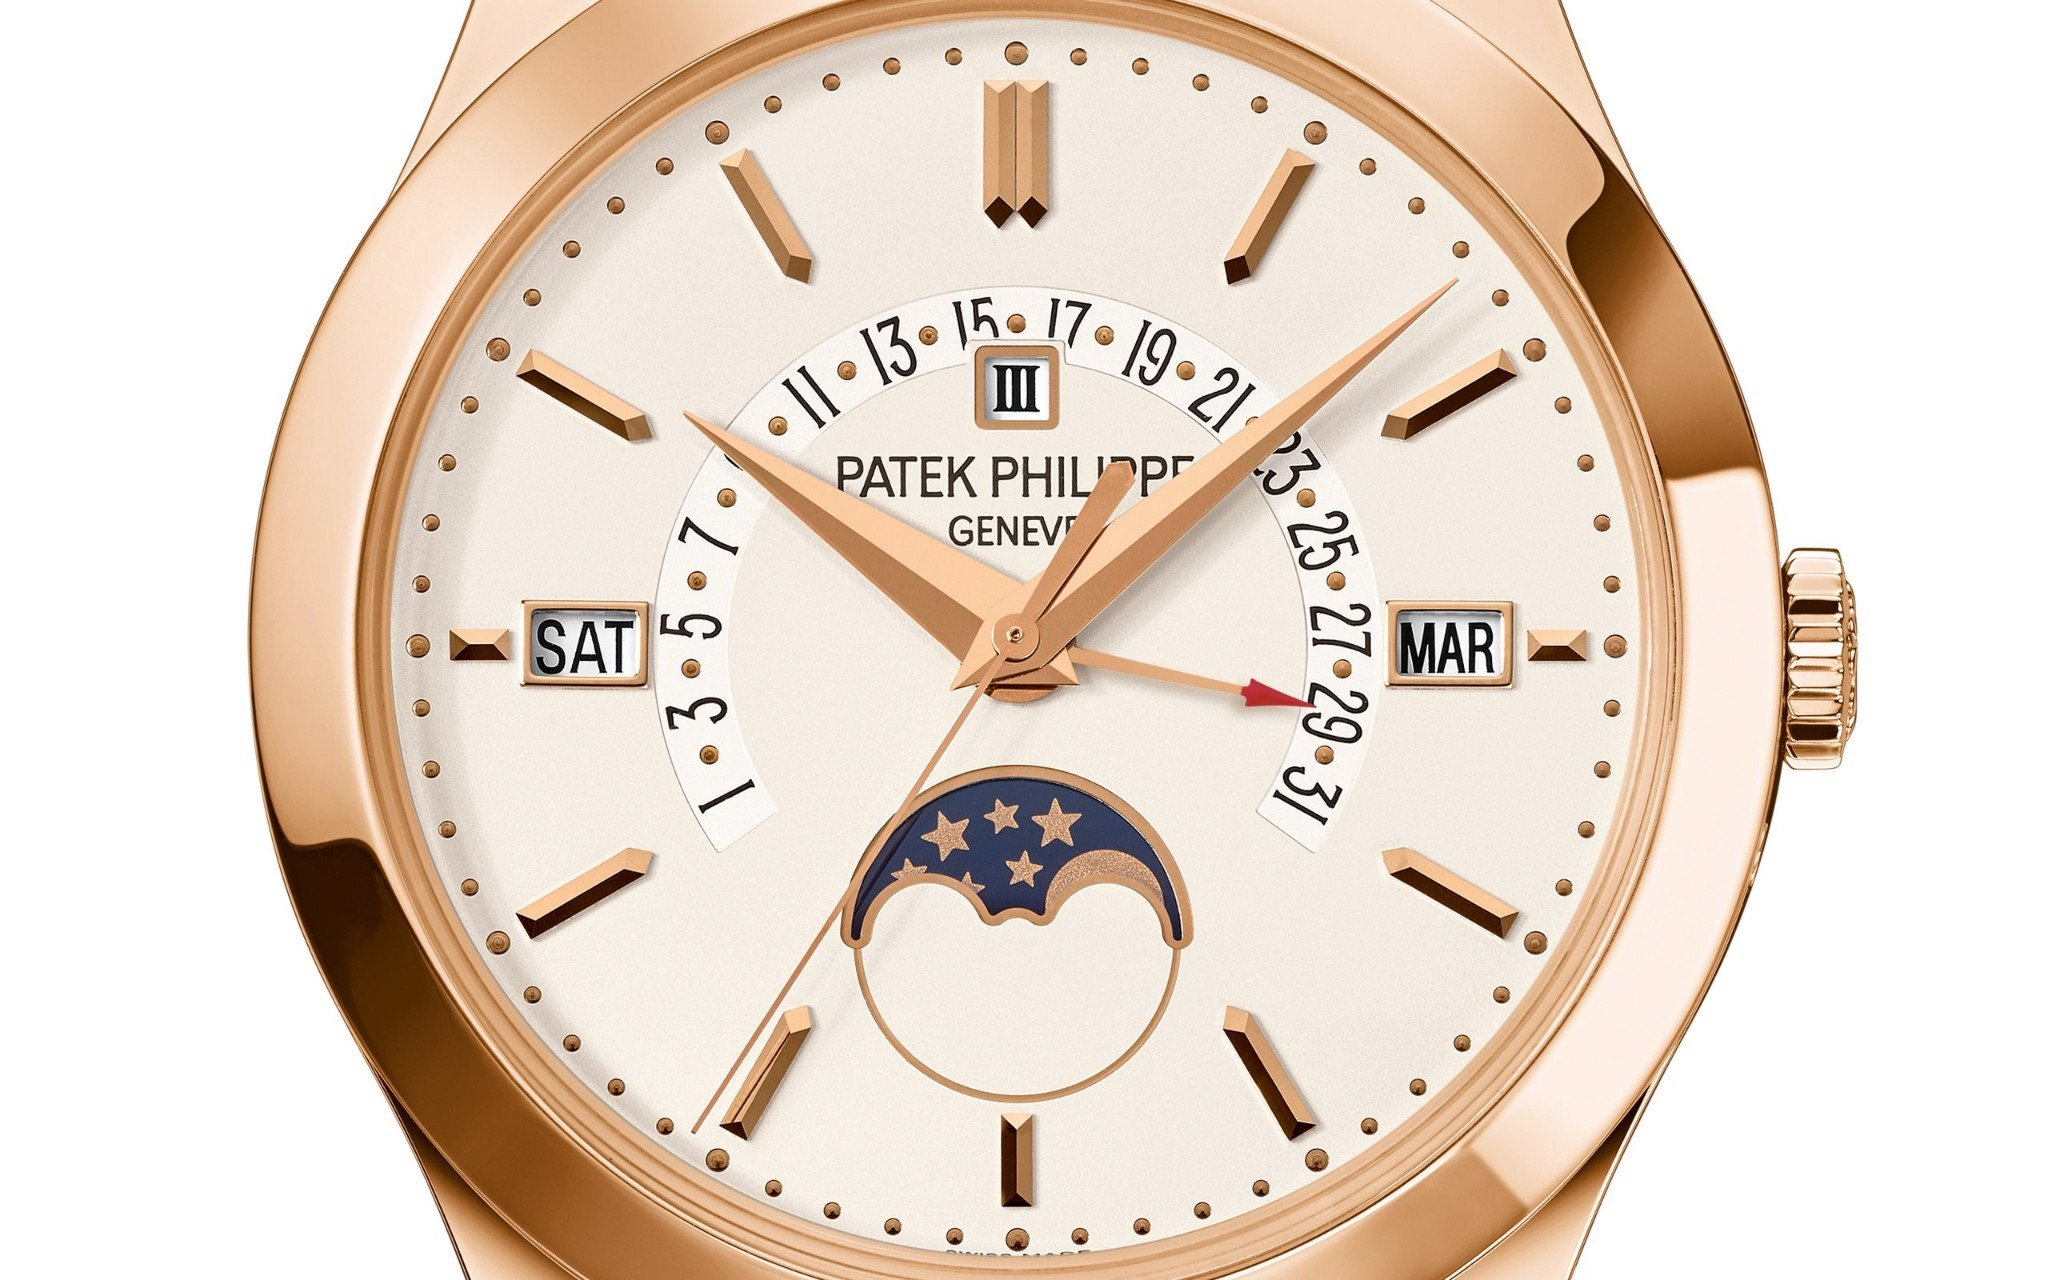 Patek Philippe Grand Complications 5496R-001 - Perpetual Calendar